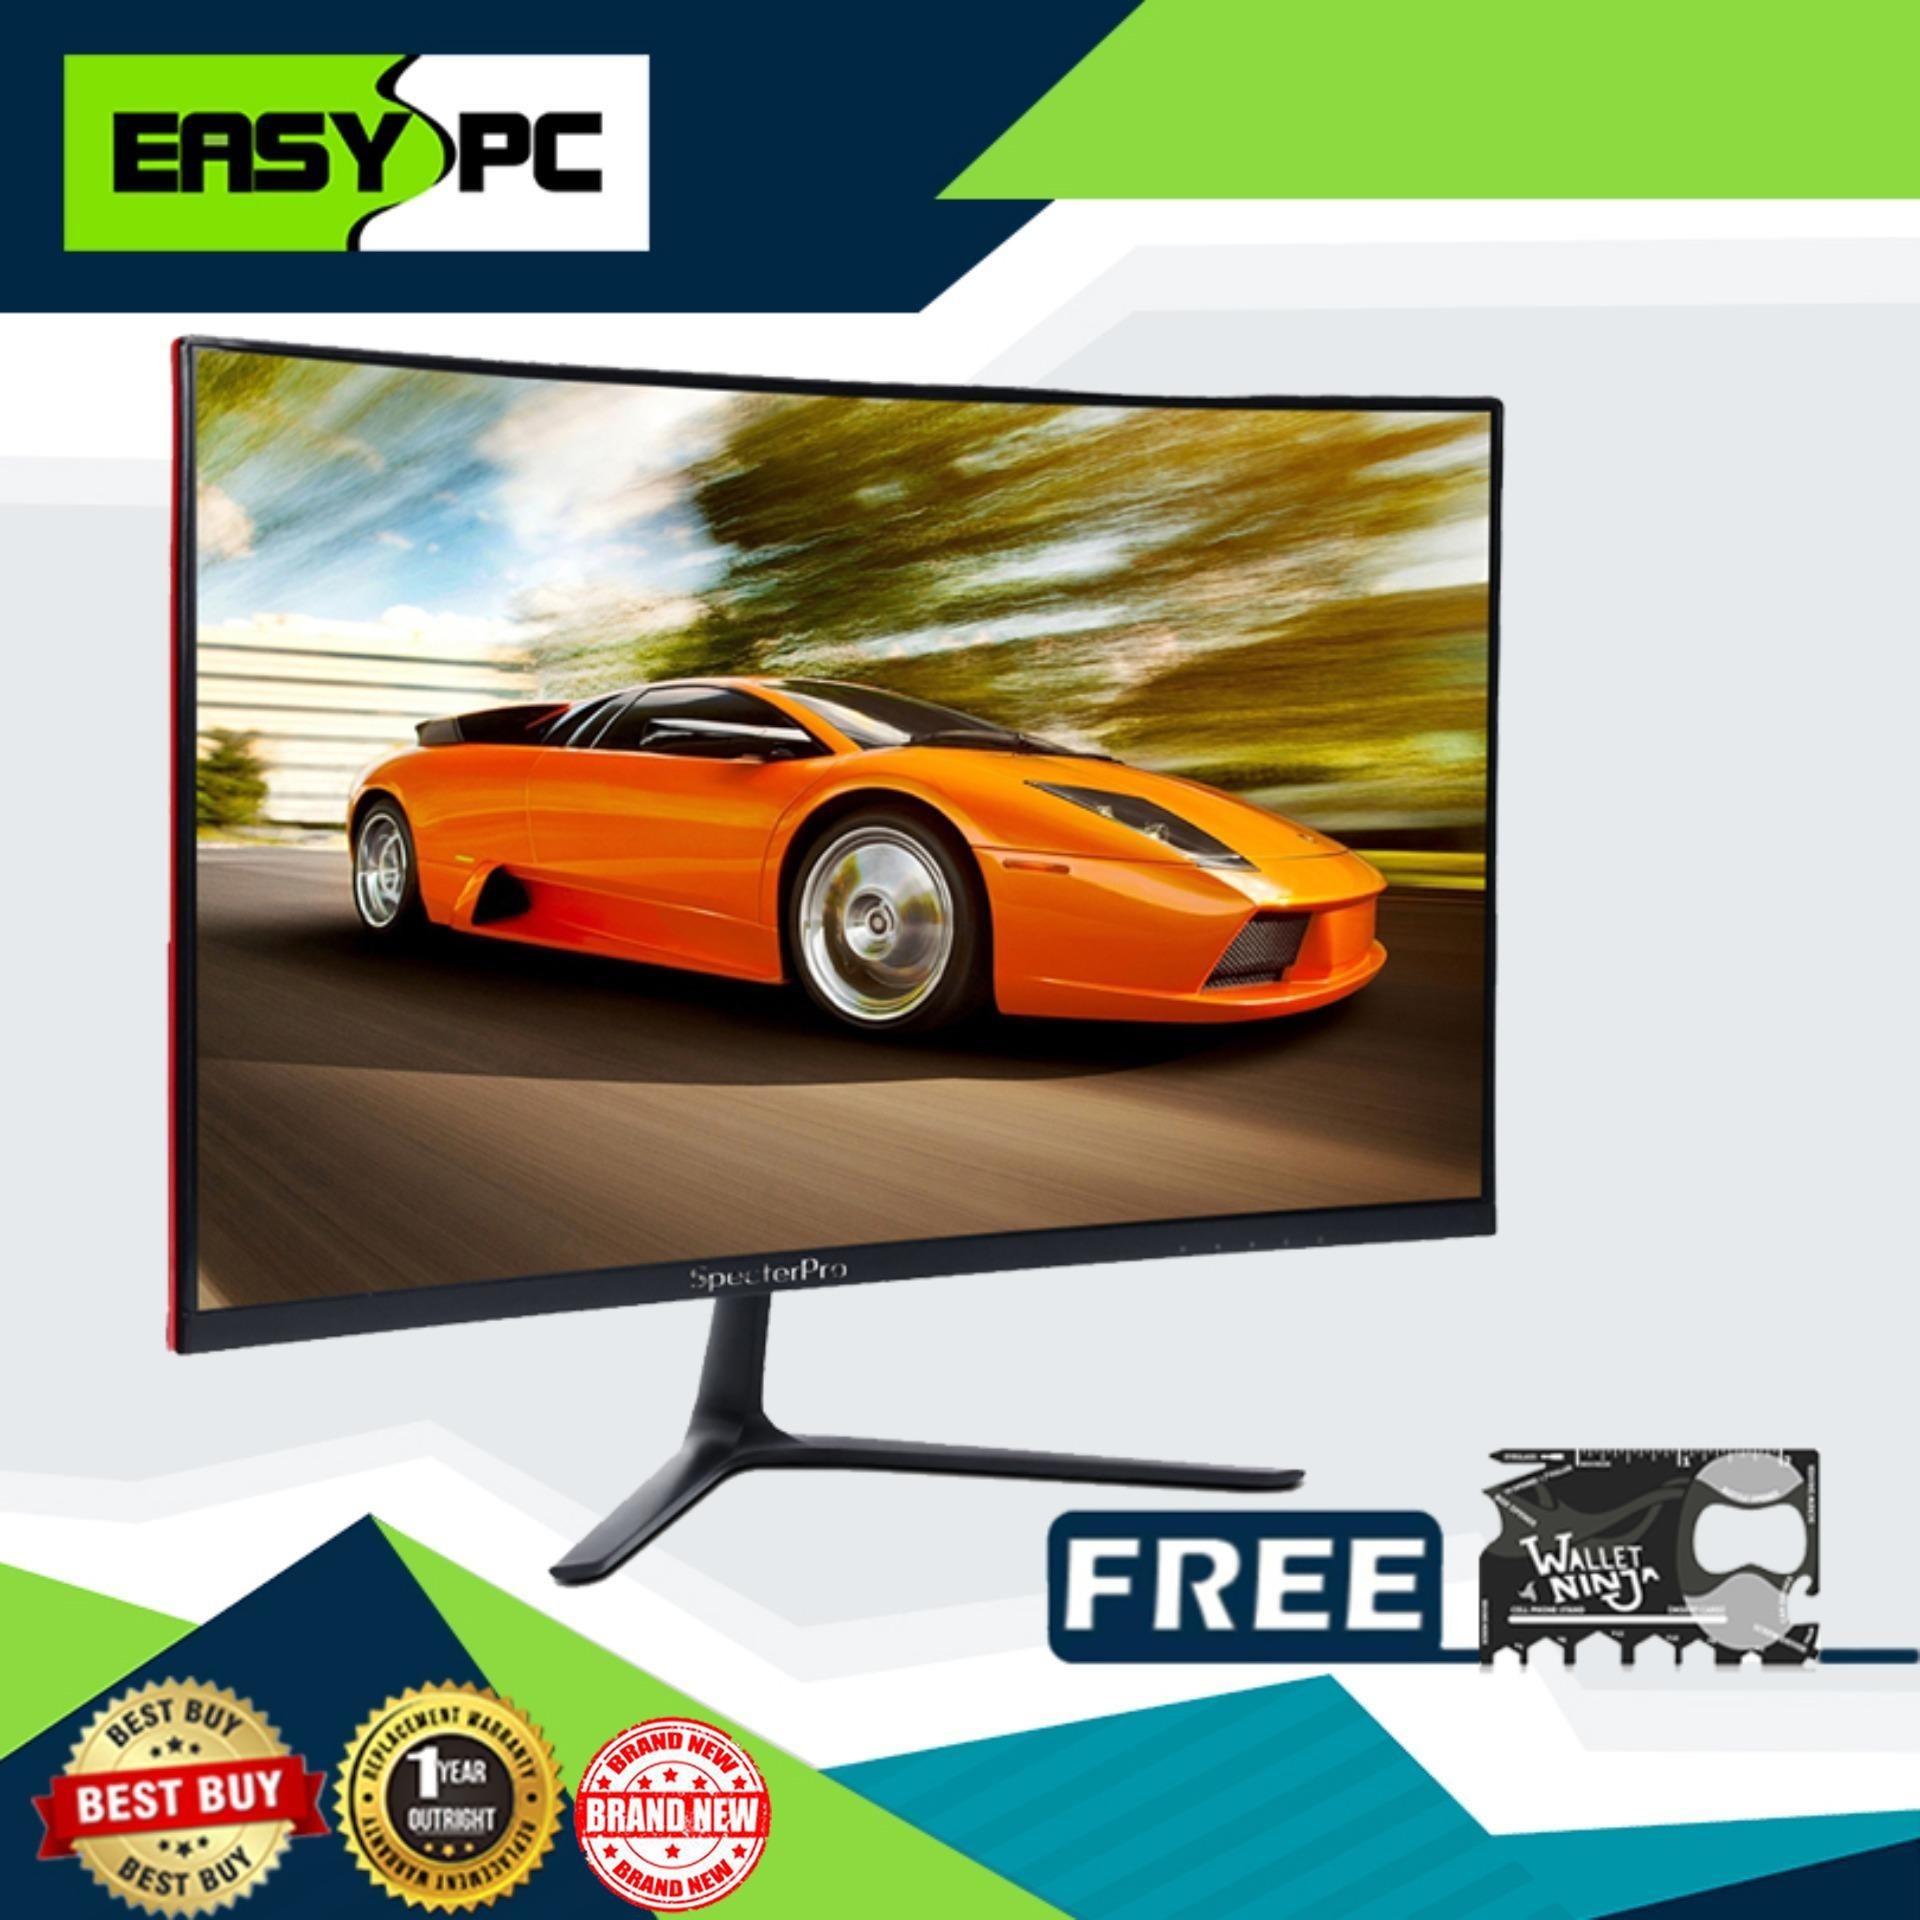 SpecterPro XT27NS 27 144hz Curved Monitor with TACTICARD, Specter Pro Eco-friendly, Low Power Consumption.4ms Response Time , AMD Freesync Monitor, gaming Curve Monitor, Full High Definition resolution with In-Plane Switch